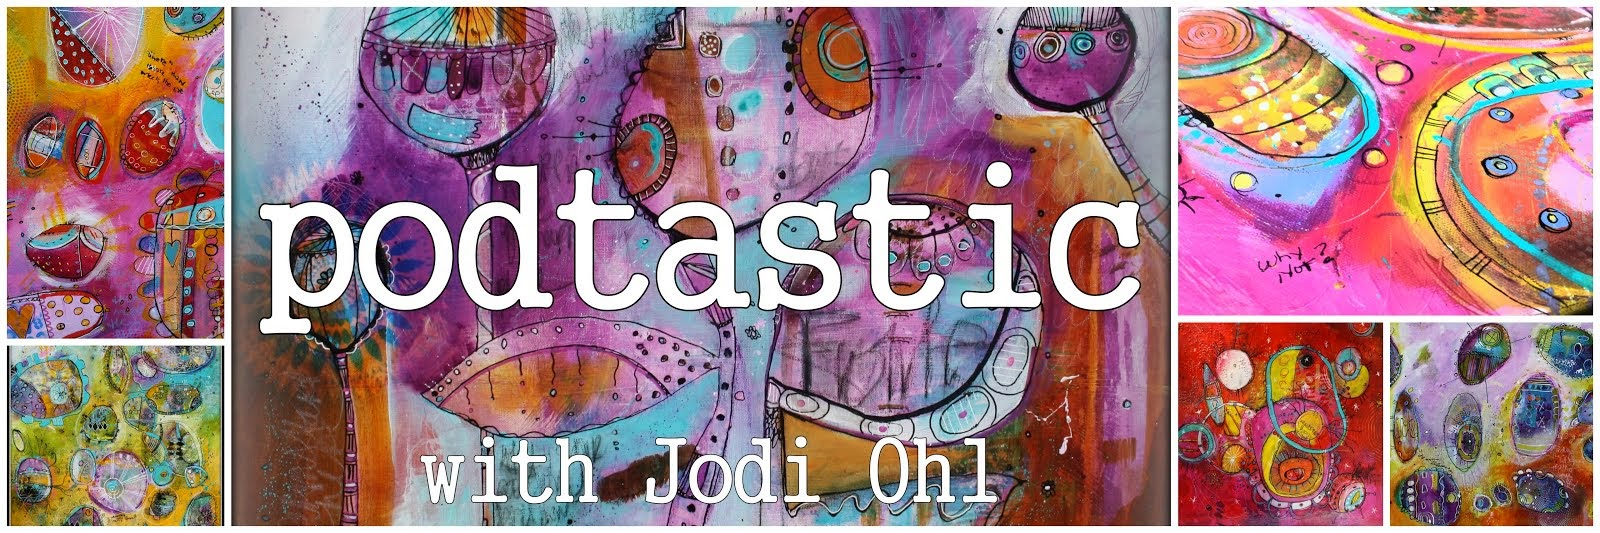 Podtastic with Jodi Ohl